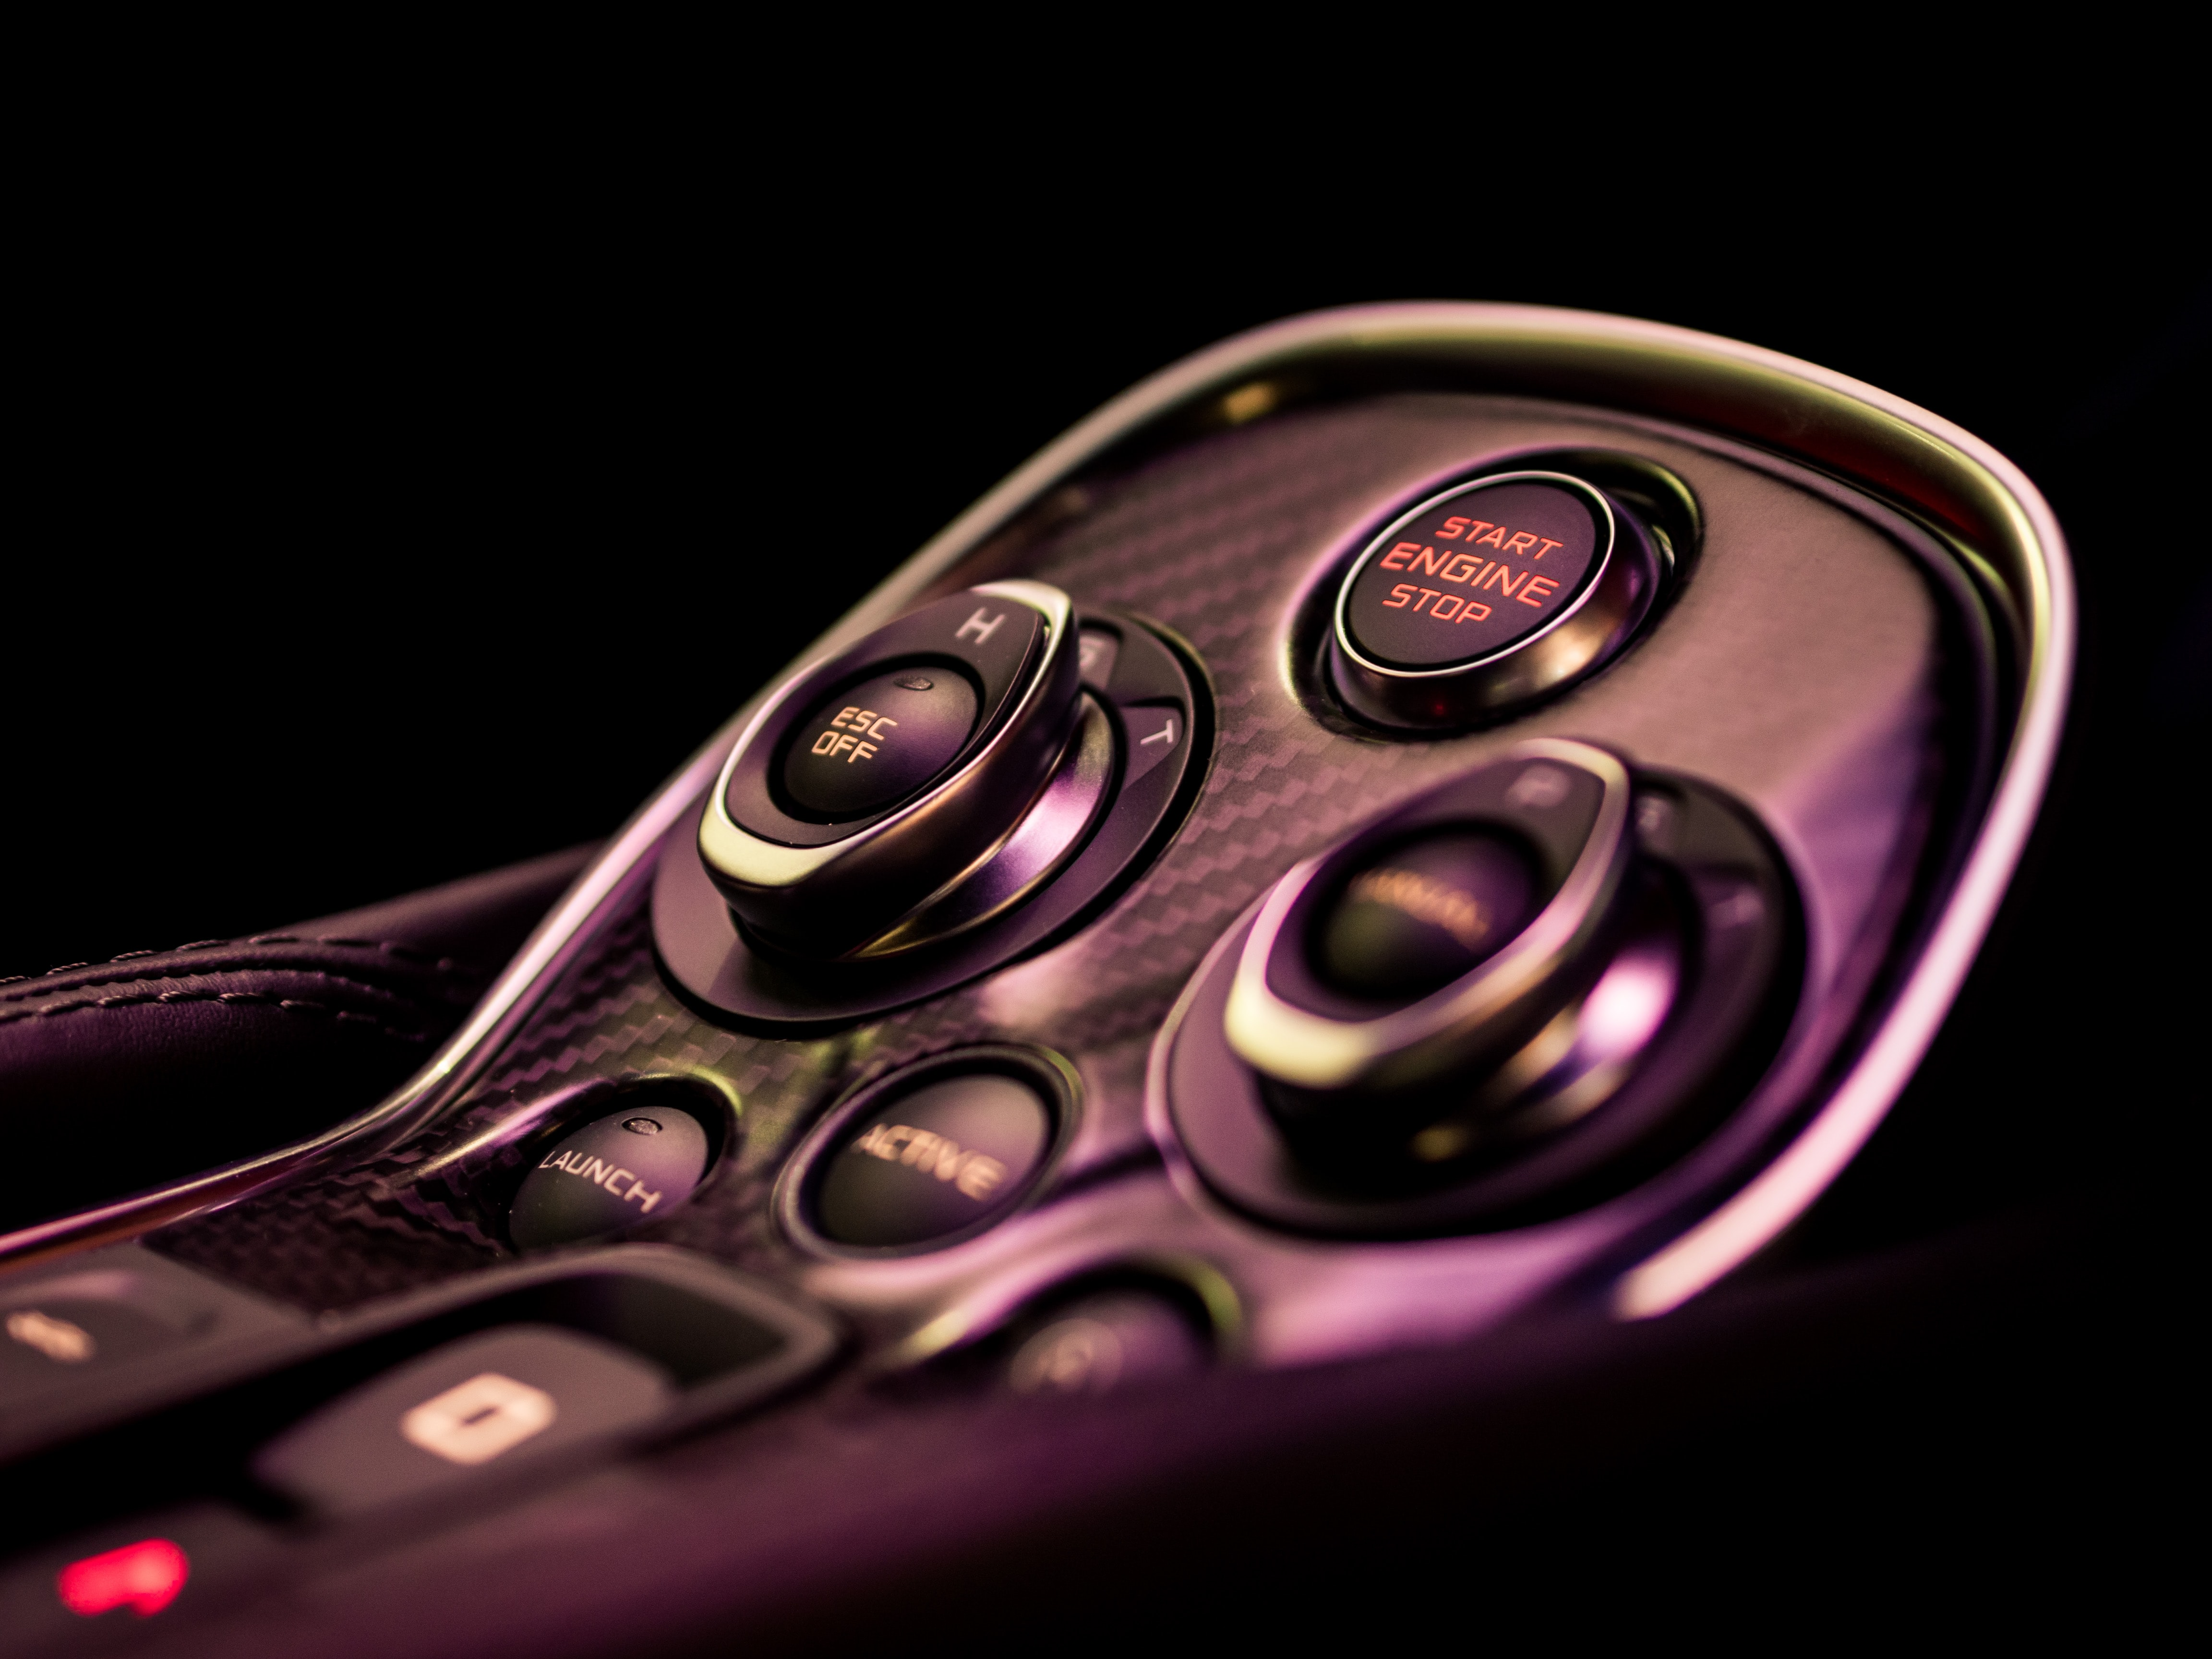 closeup photo of black remote control